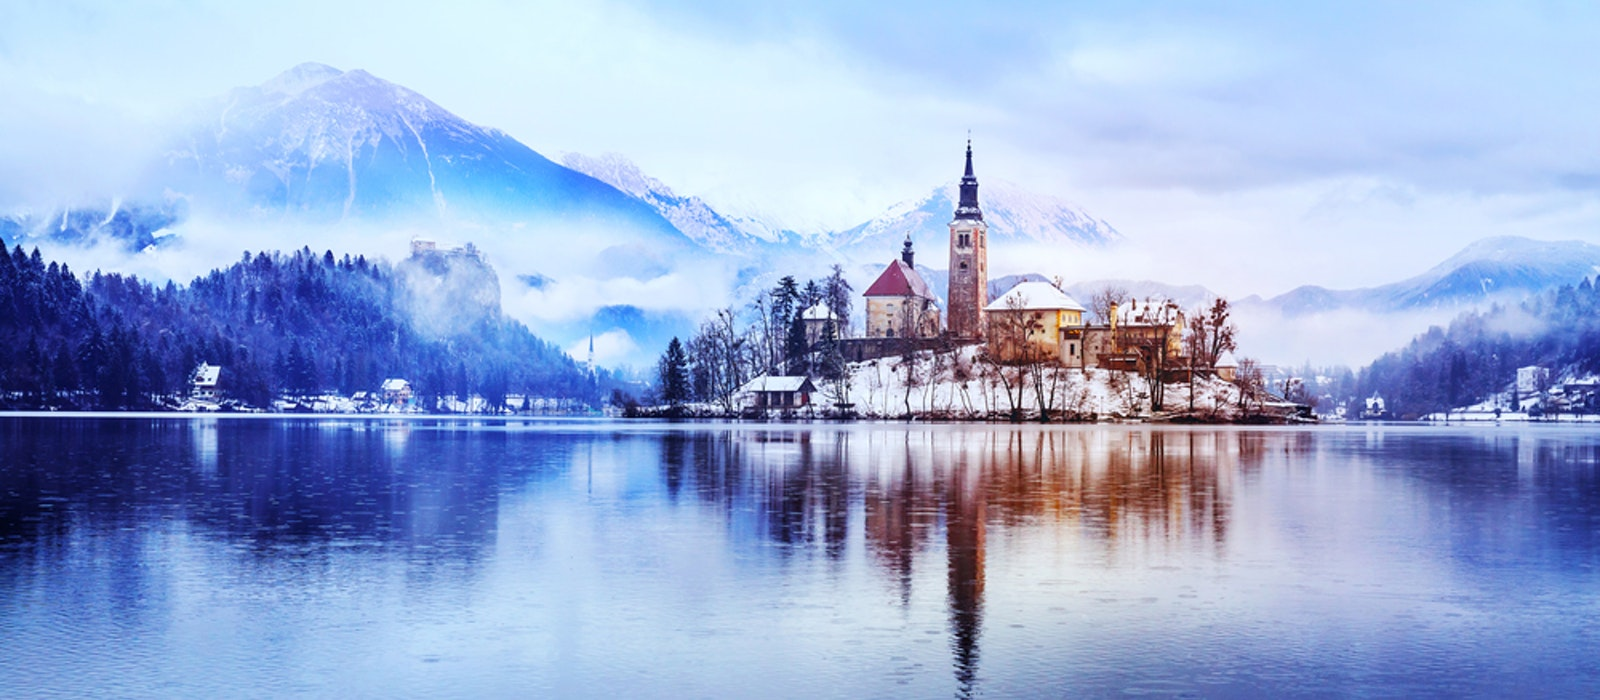 Explore the Slovenian Alps from a base like scenic Lake Bled.